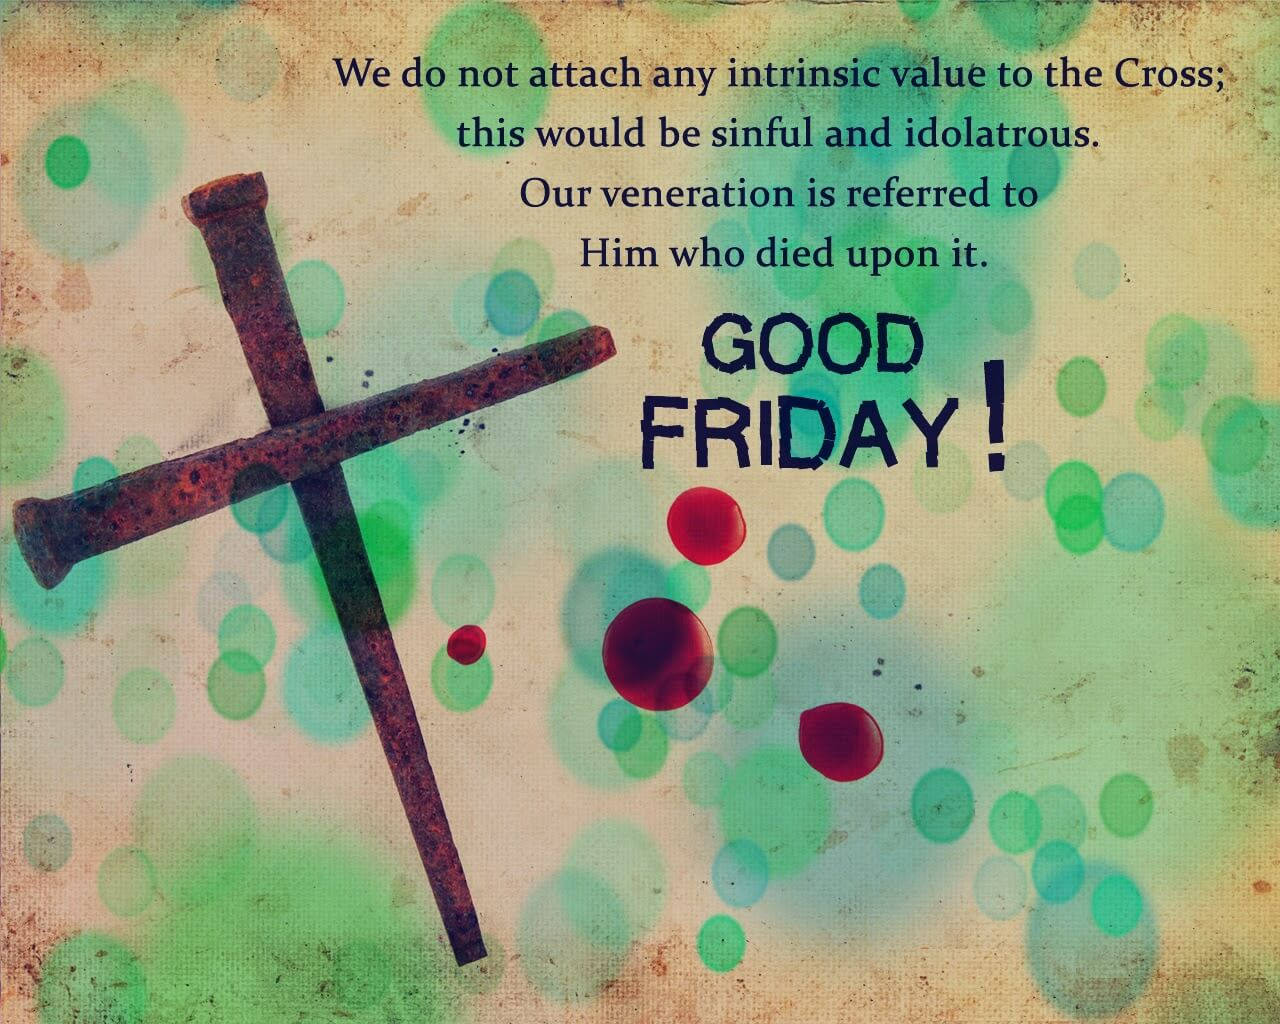 Good Friday Wishes & Quotes